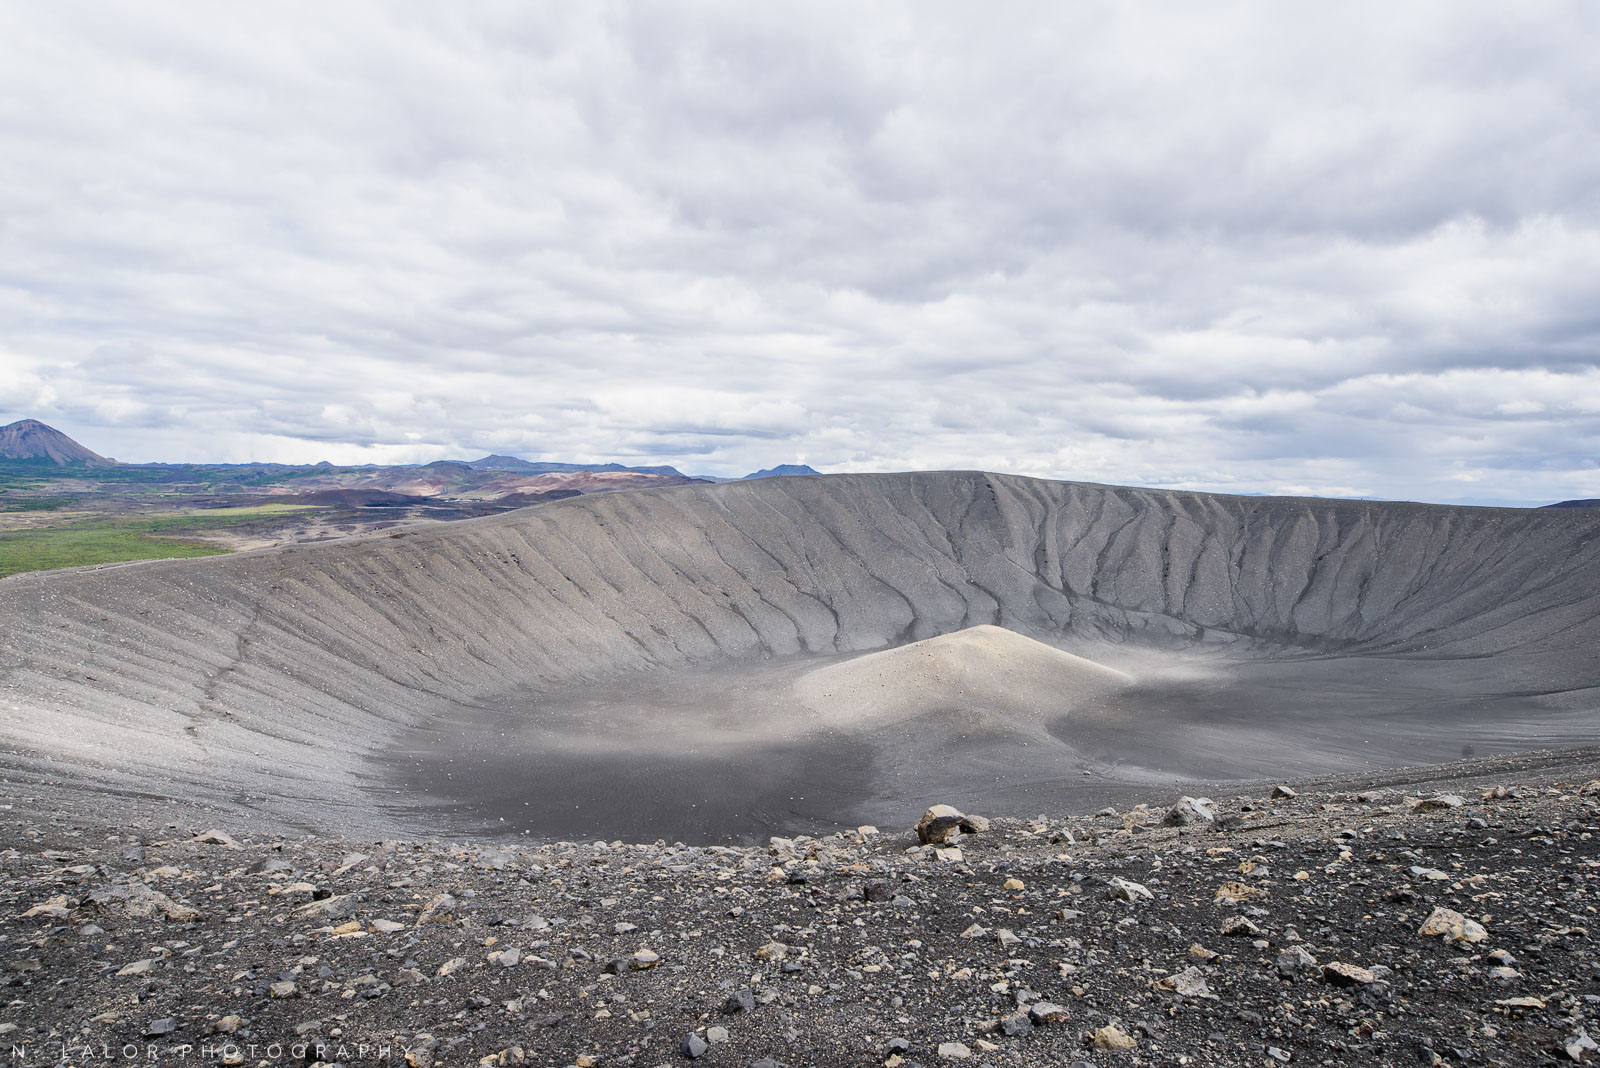 Hverfjall crater. From my trip to Iceland in 2018. Photograph by Nataliya Lalor.